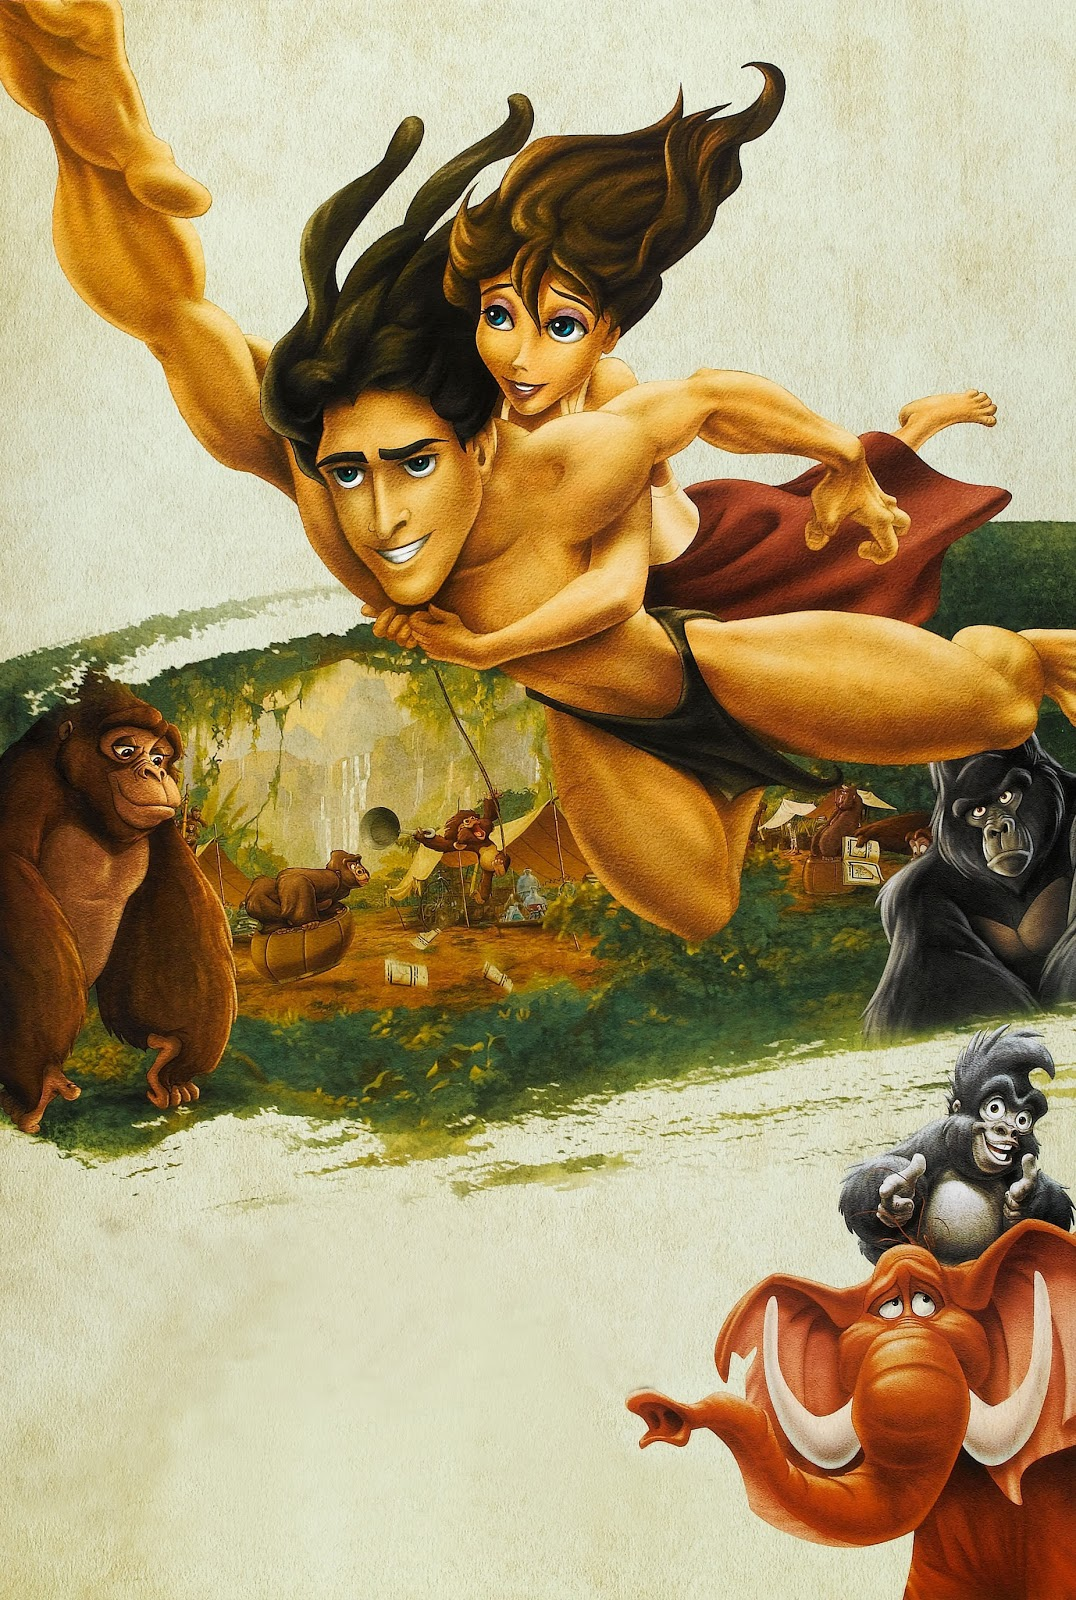 Tarzan wallpapers high quality download free - Tarzan wallpaper ...